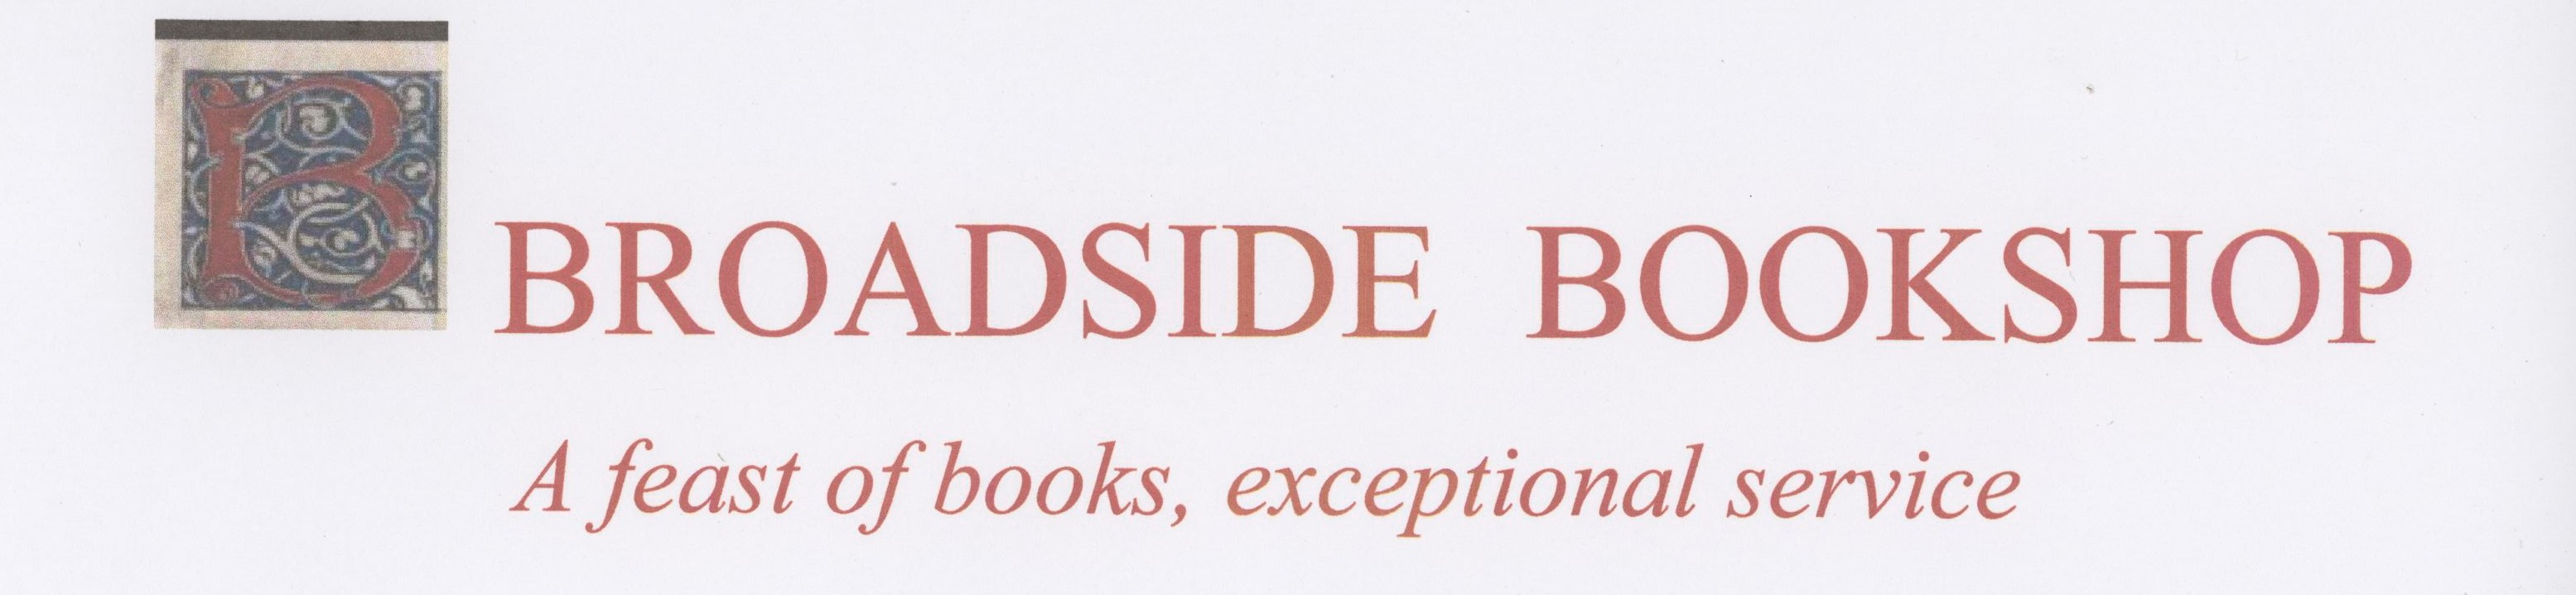 Broadside Bookshop, Inc.